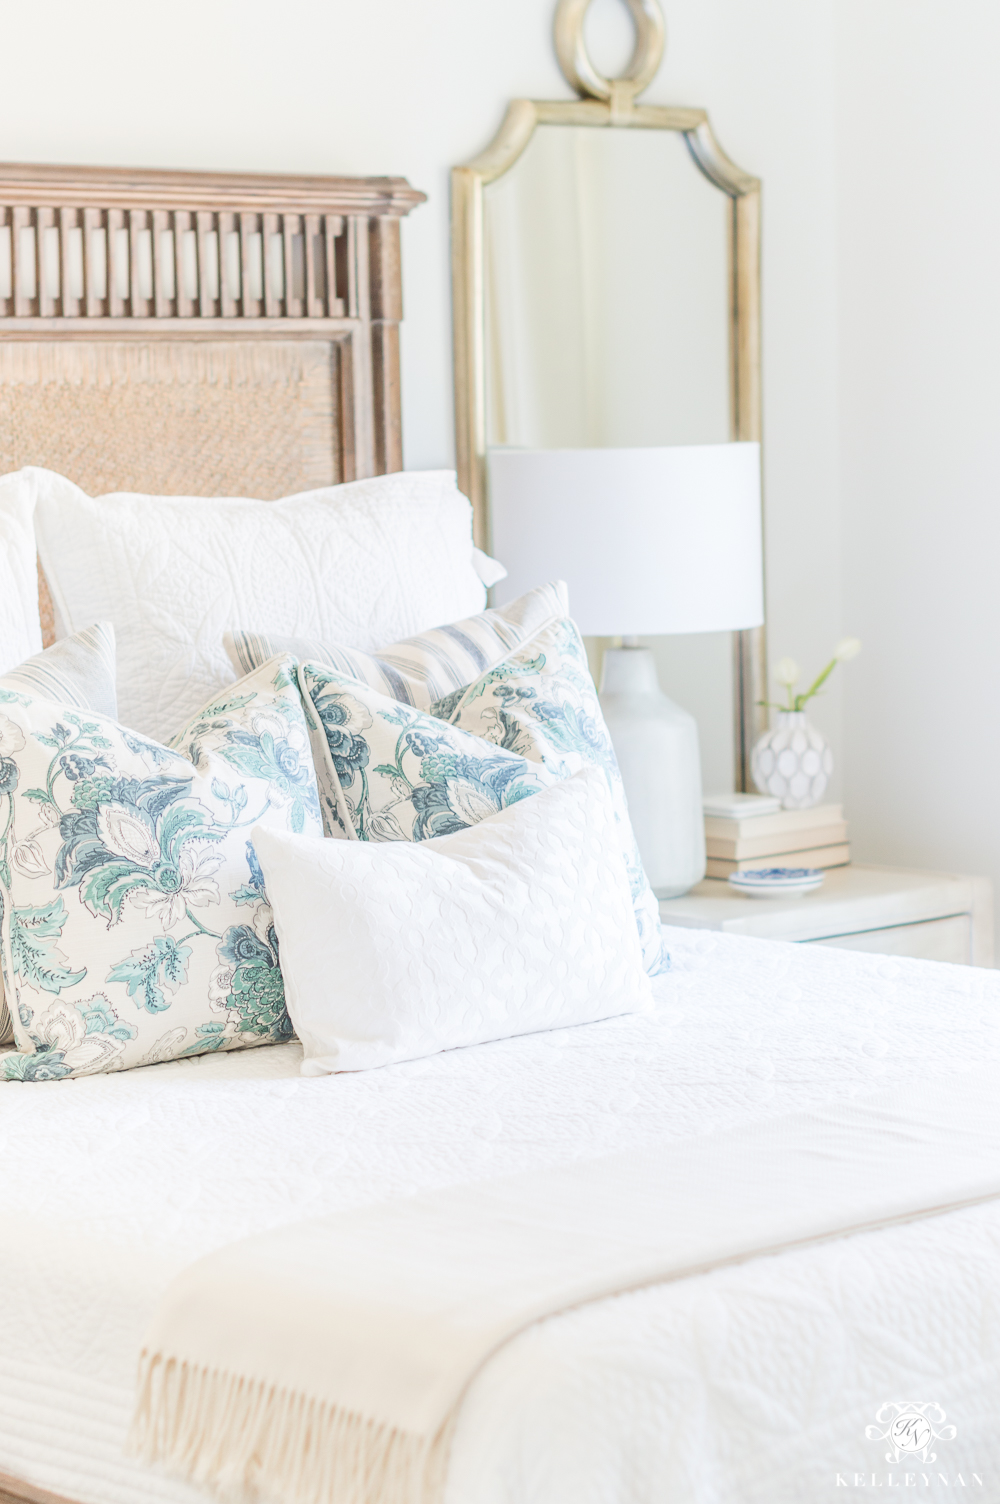 Spring Guest Bedroom Pillows